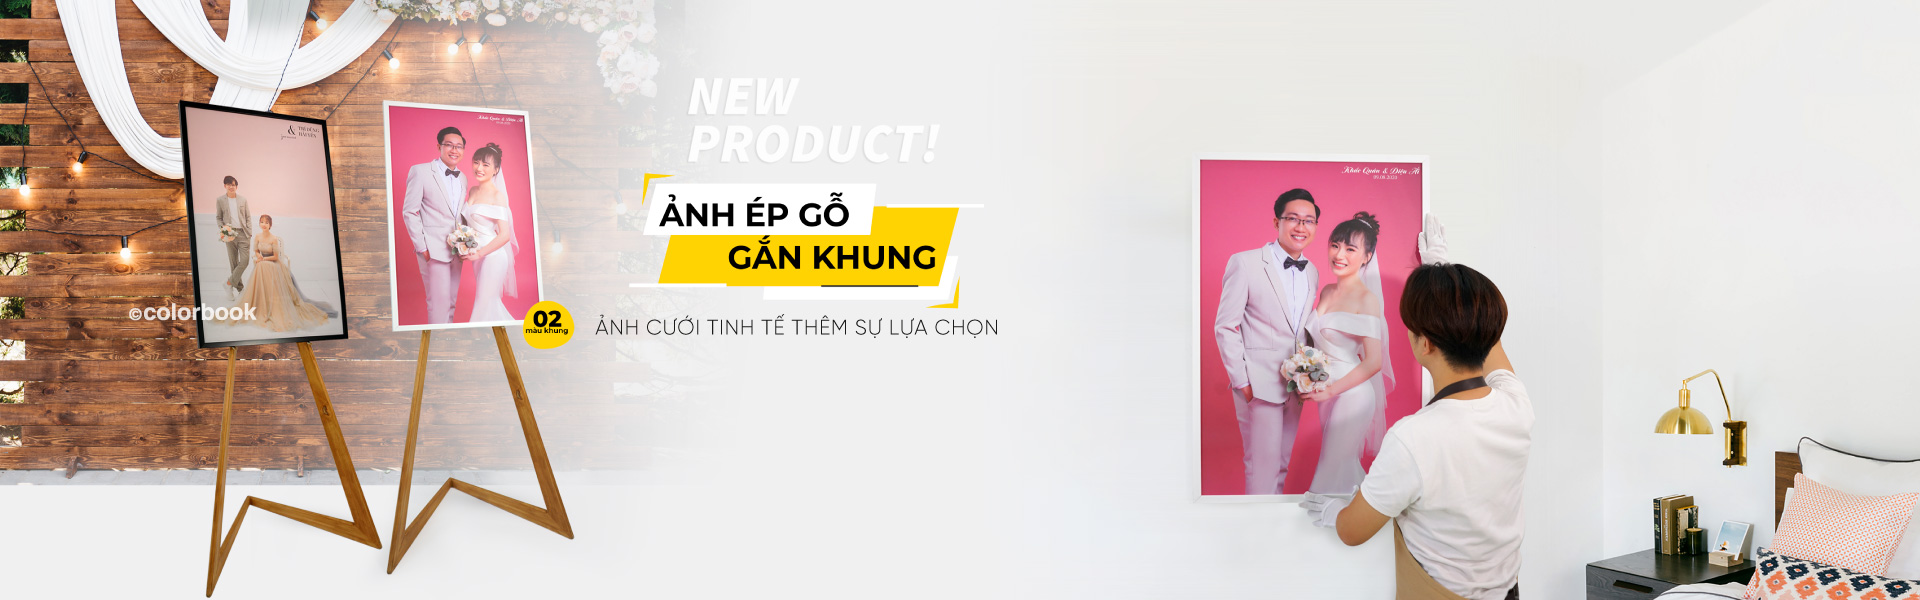 anh-ep-go-banner